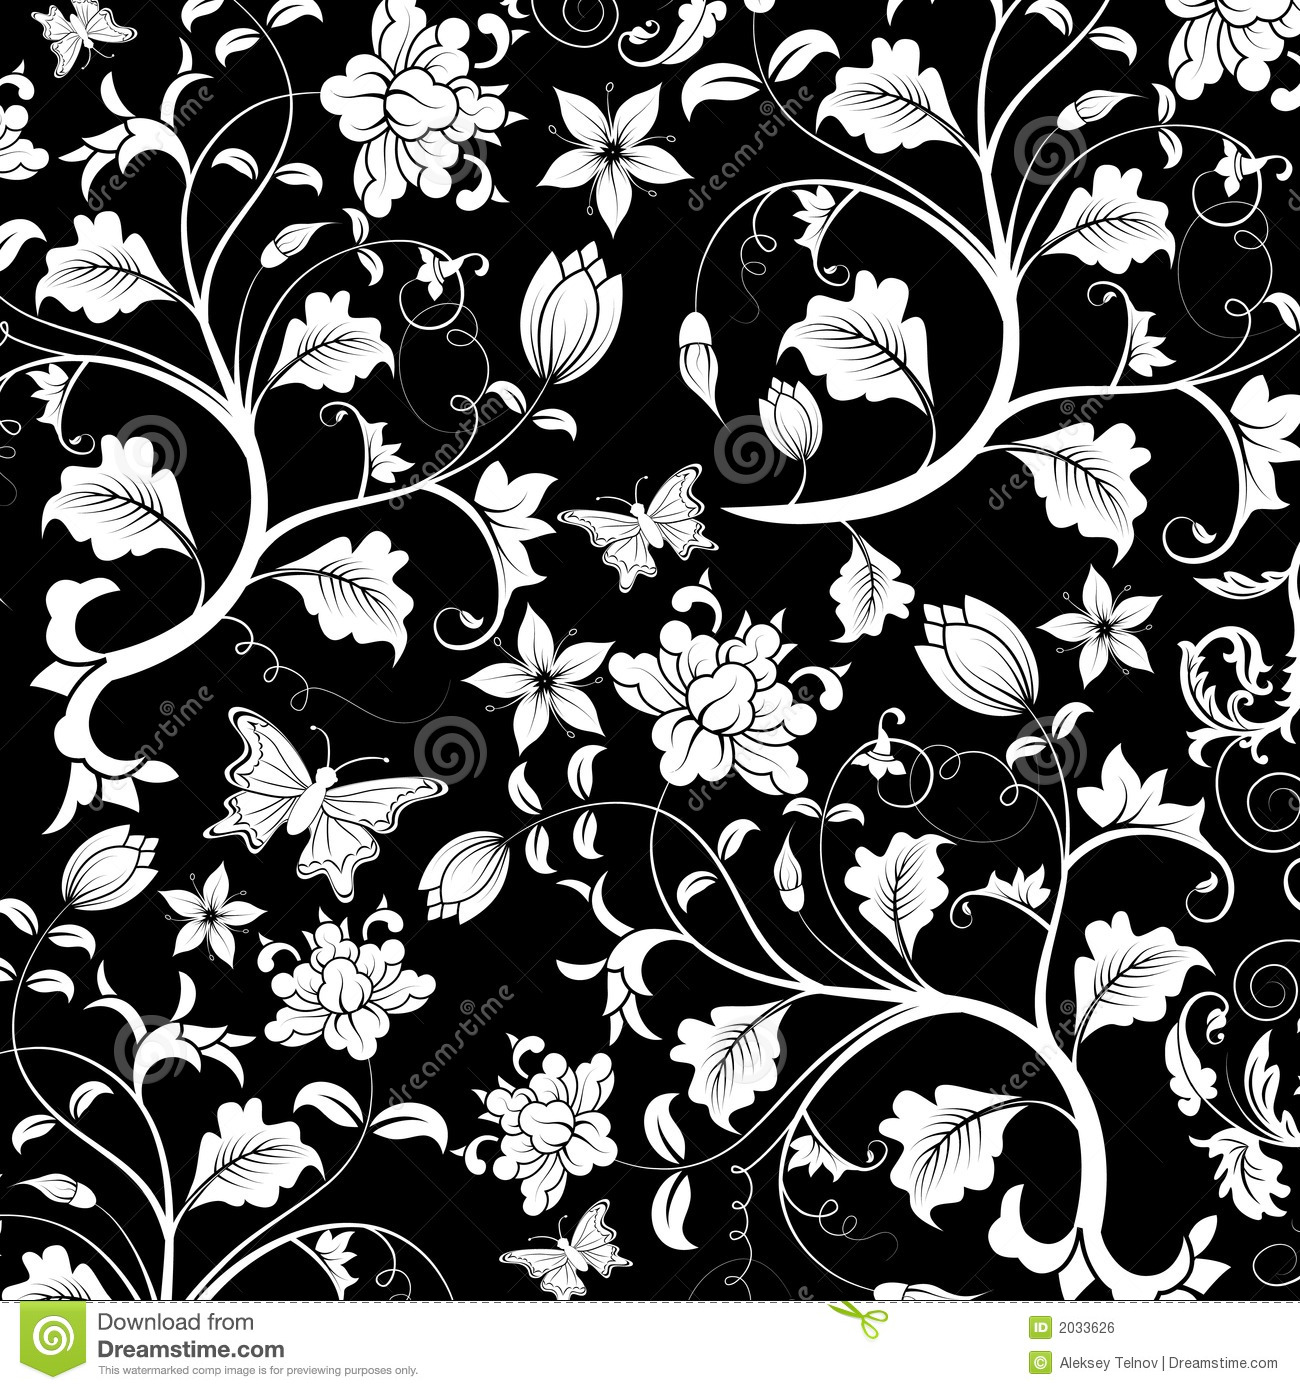 Black Flower And Bud Pattern Royalty Free Stock Photos: Abstract Floral Pattern, Vector Stock Vector